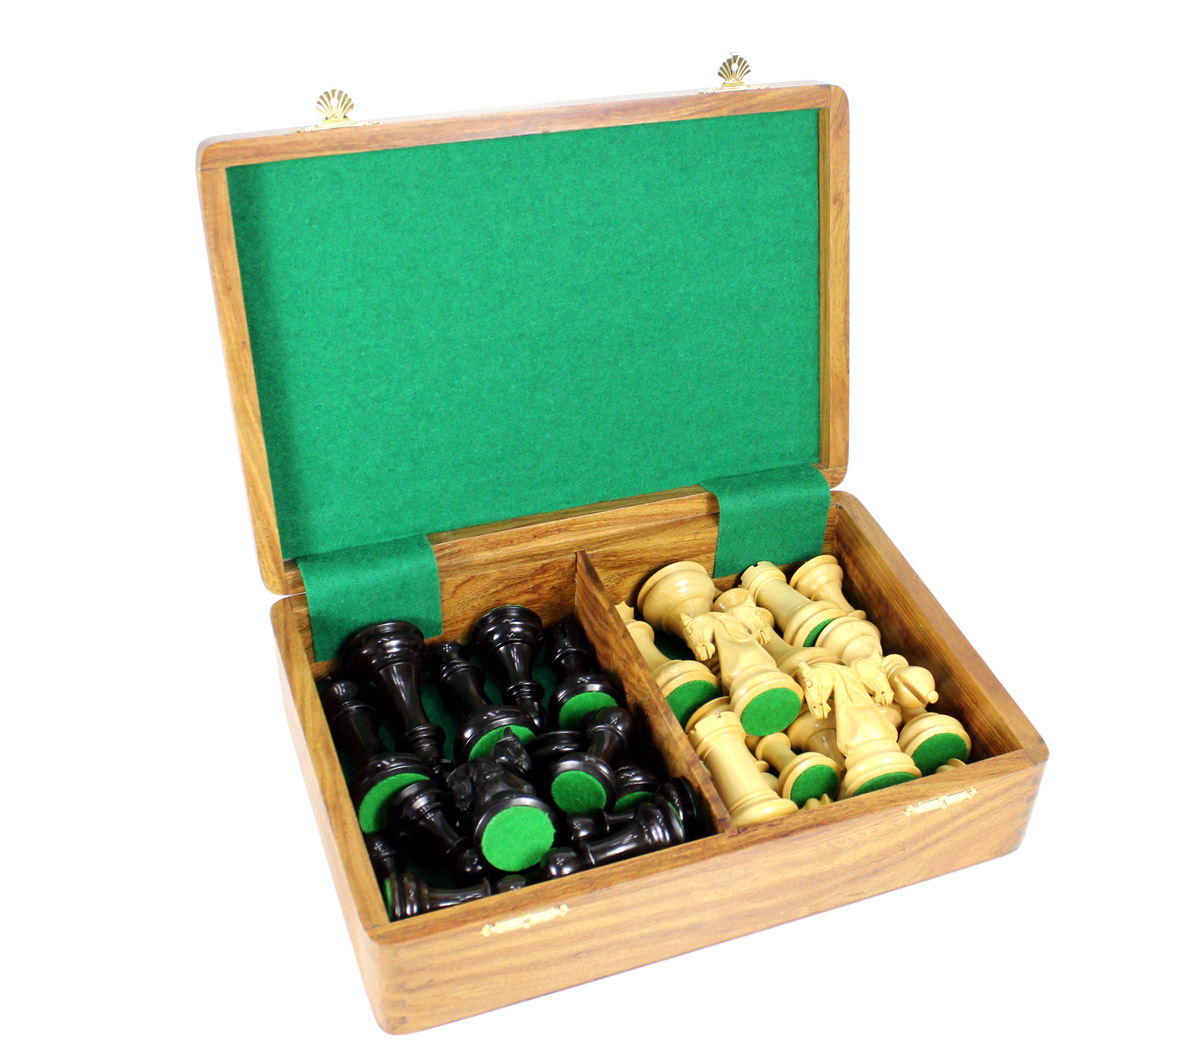 Free Wooden storage box provided with this chess set.